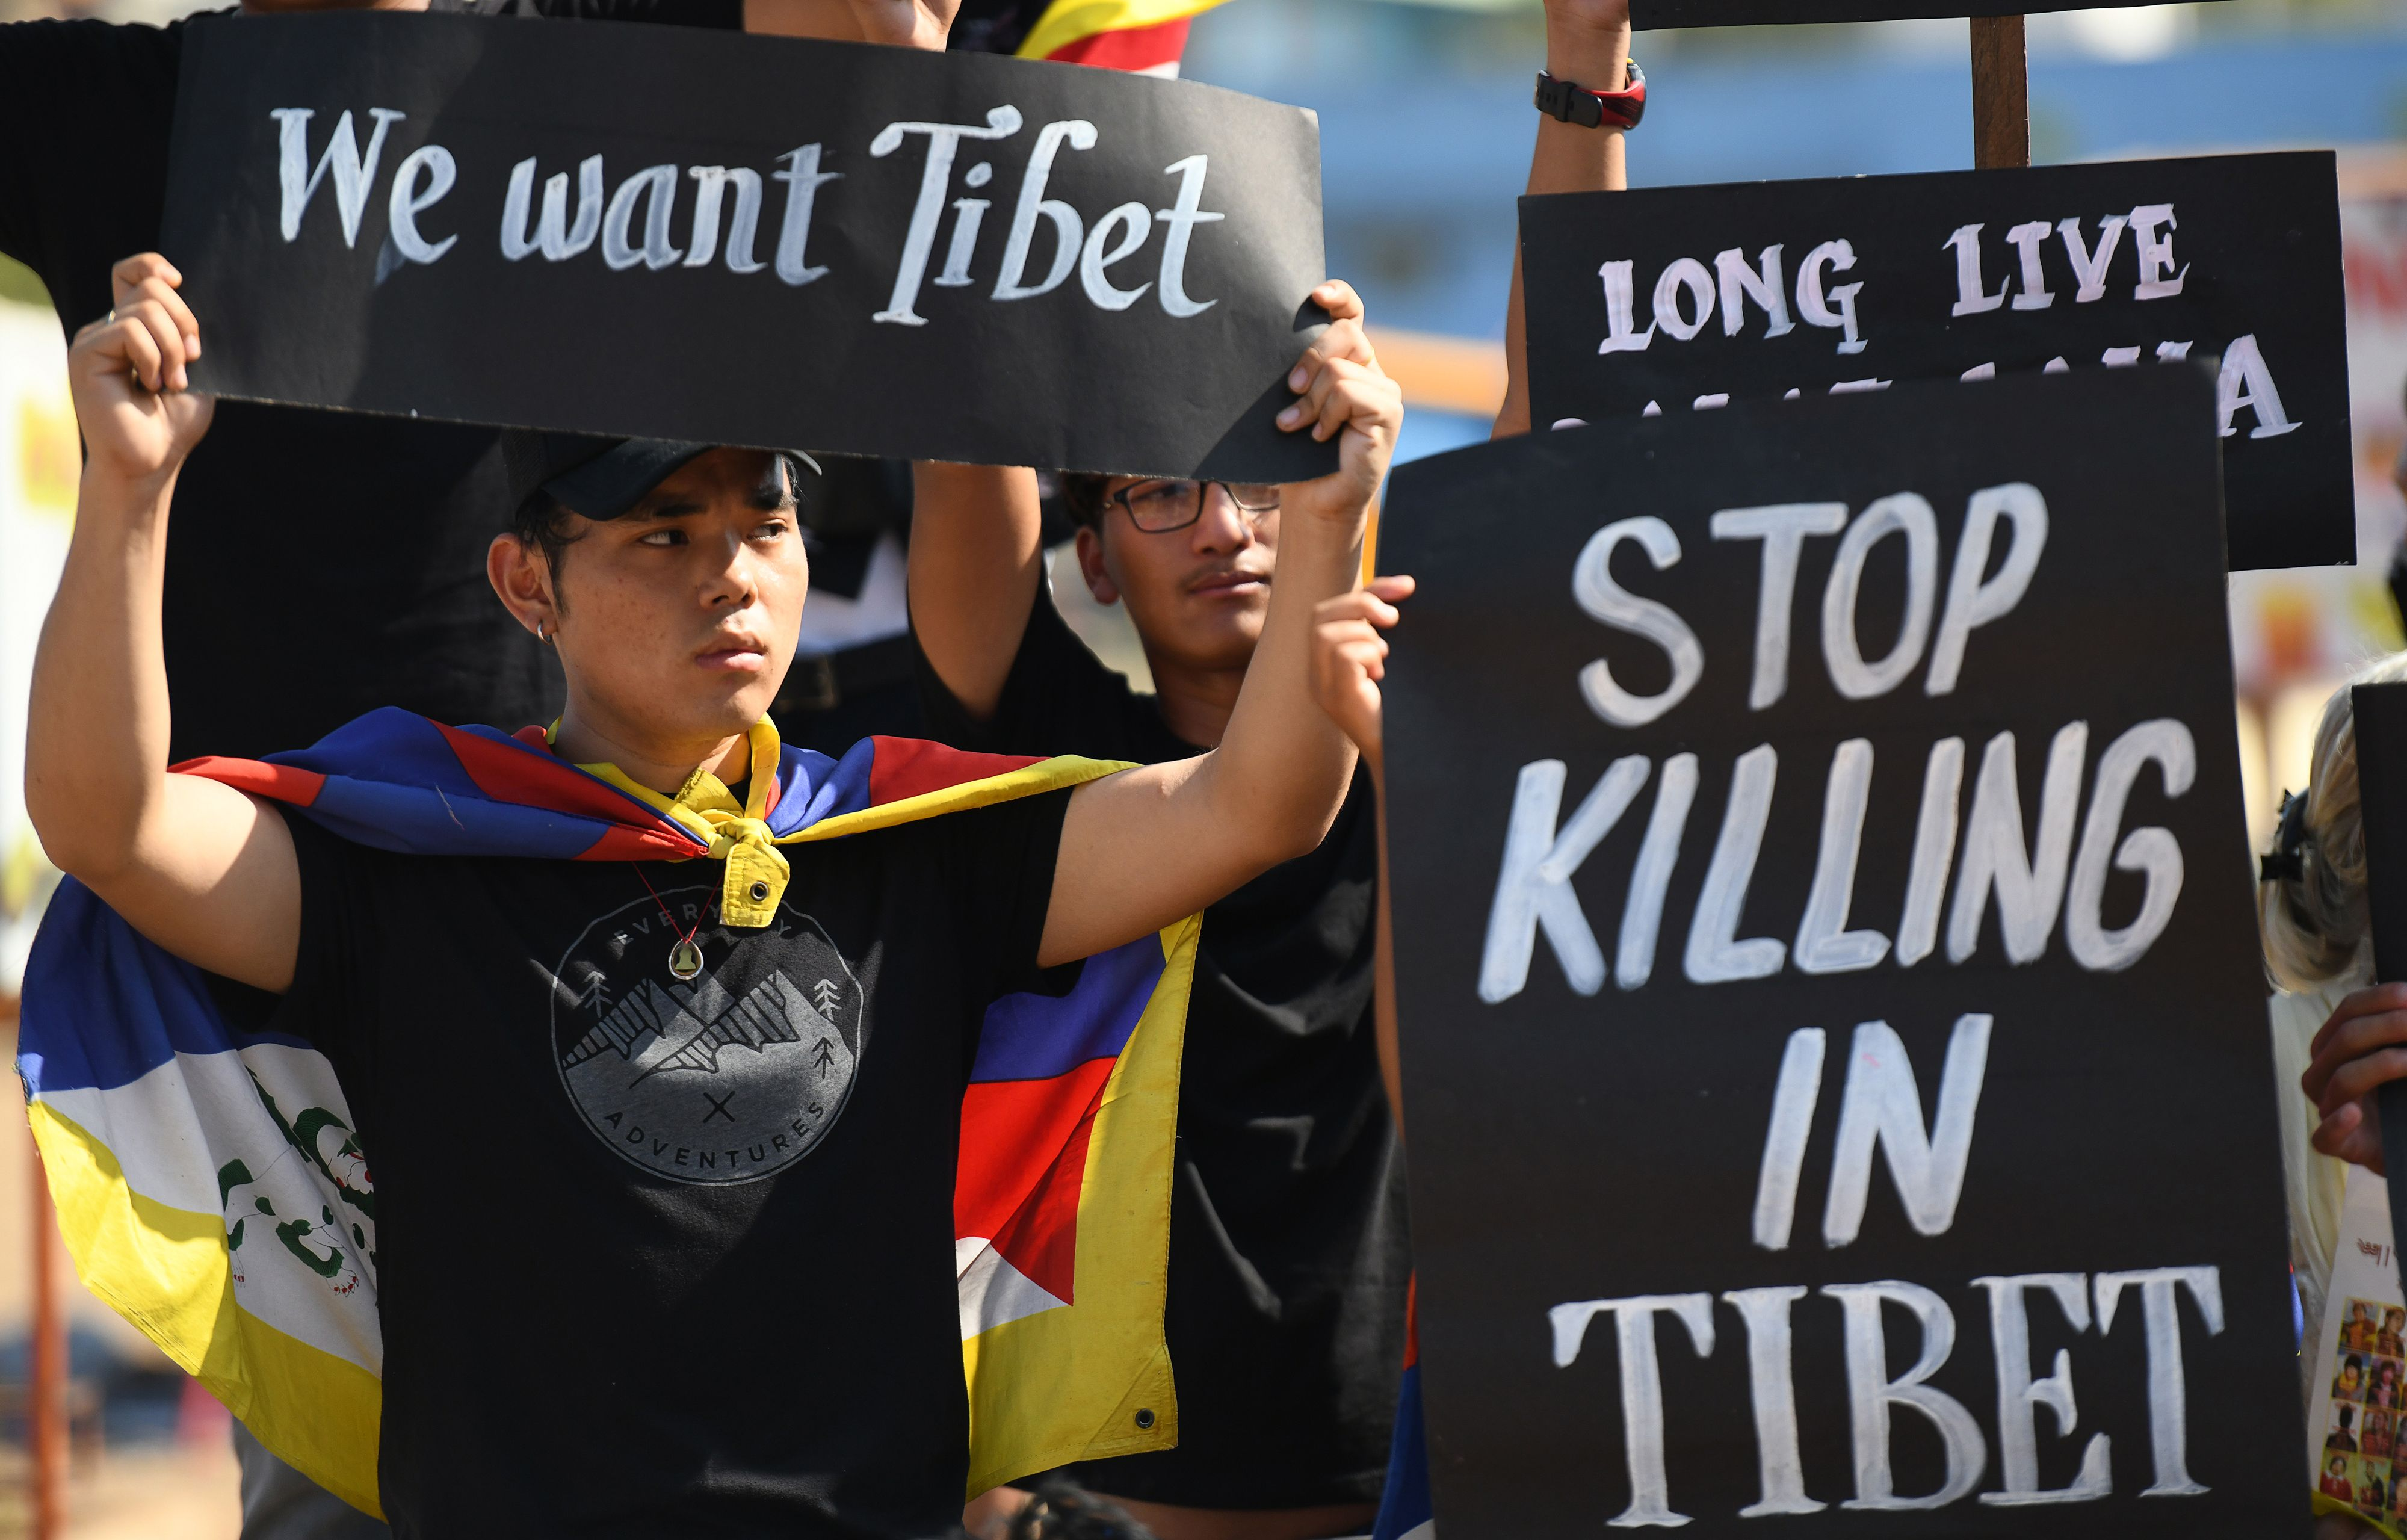 An exiled Tibetan activist holds a placard during a protest marking the 60th anniversary of the 1959 Tibetan uprising against Chinese rule in Chennai on March 10, 2019. (ARUN SANKAR/AFP/Getty Images)